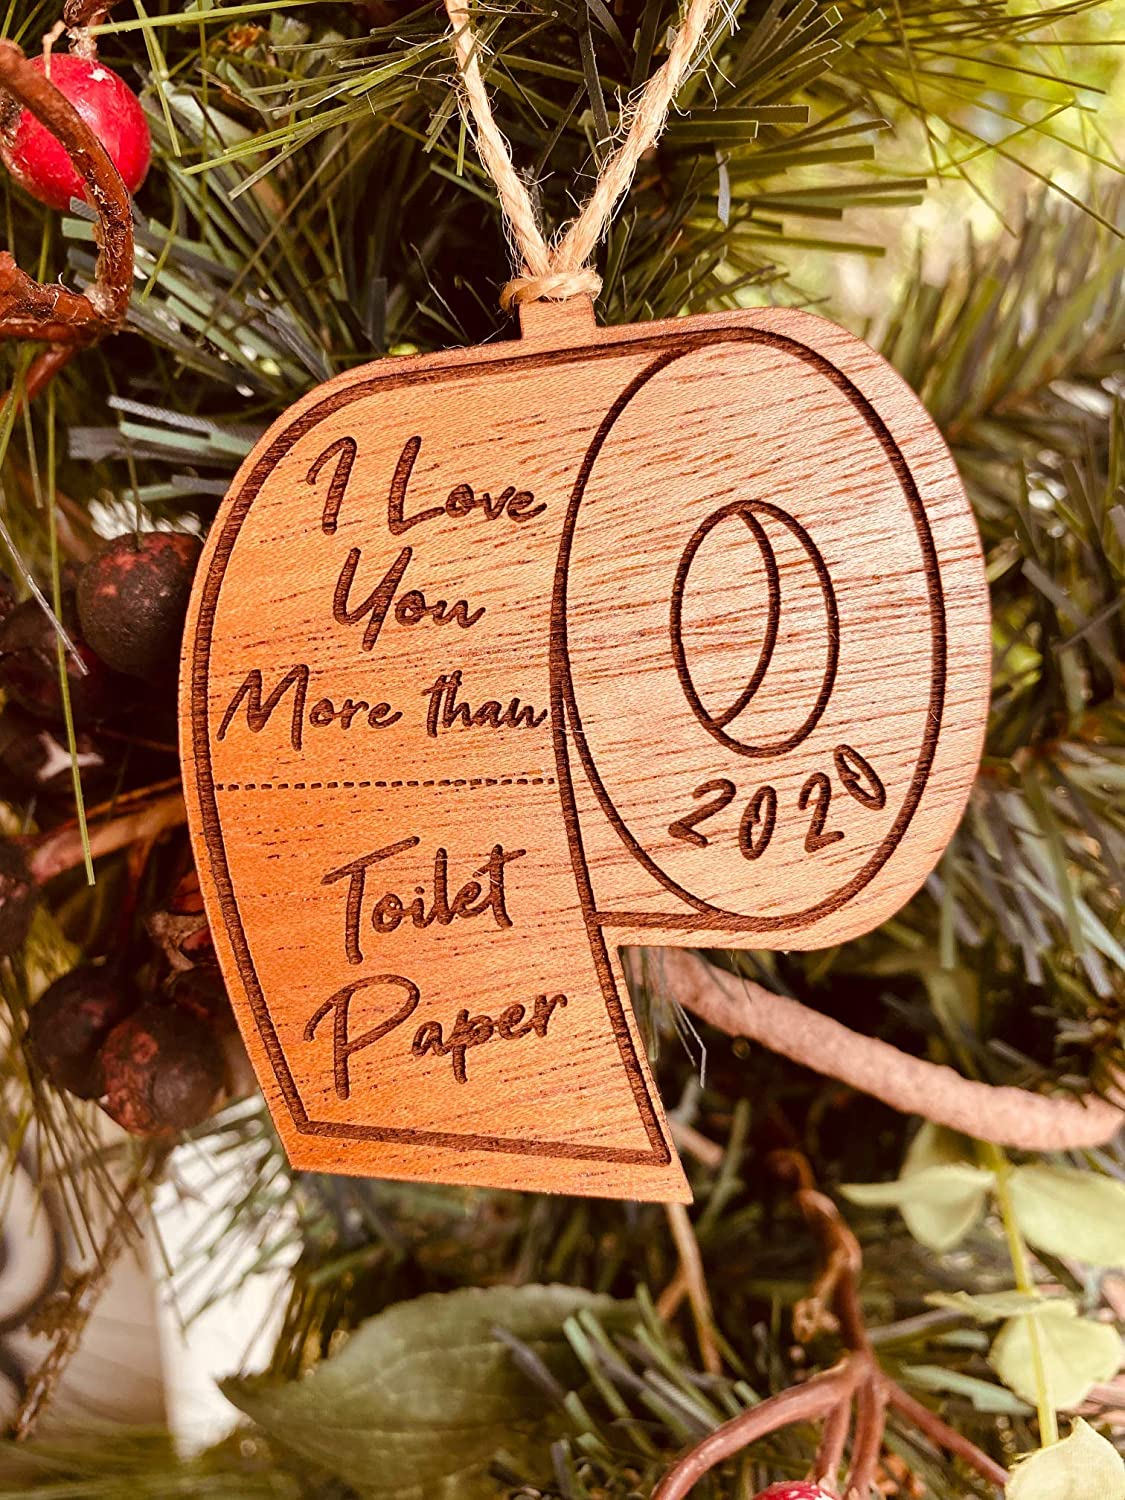 2020 Toilet Roll Paper Christmas Tree Decoration Ornament